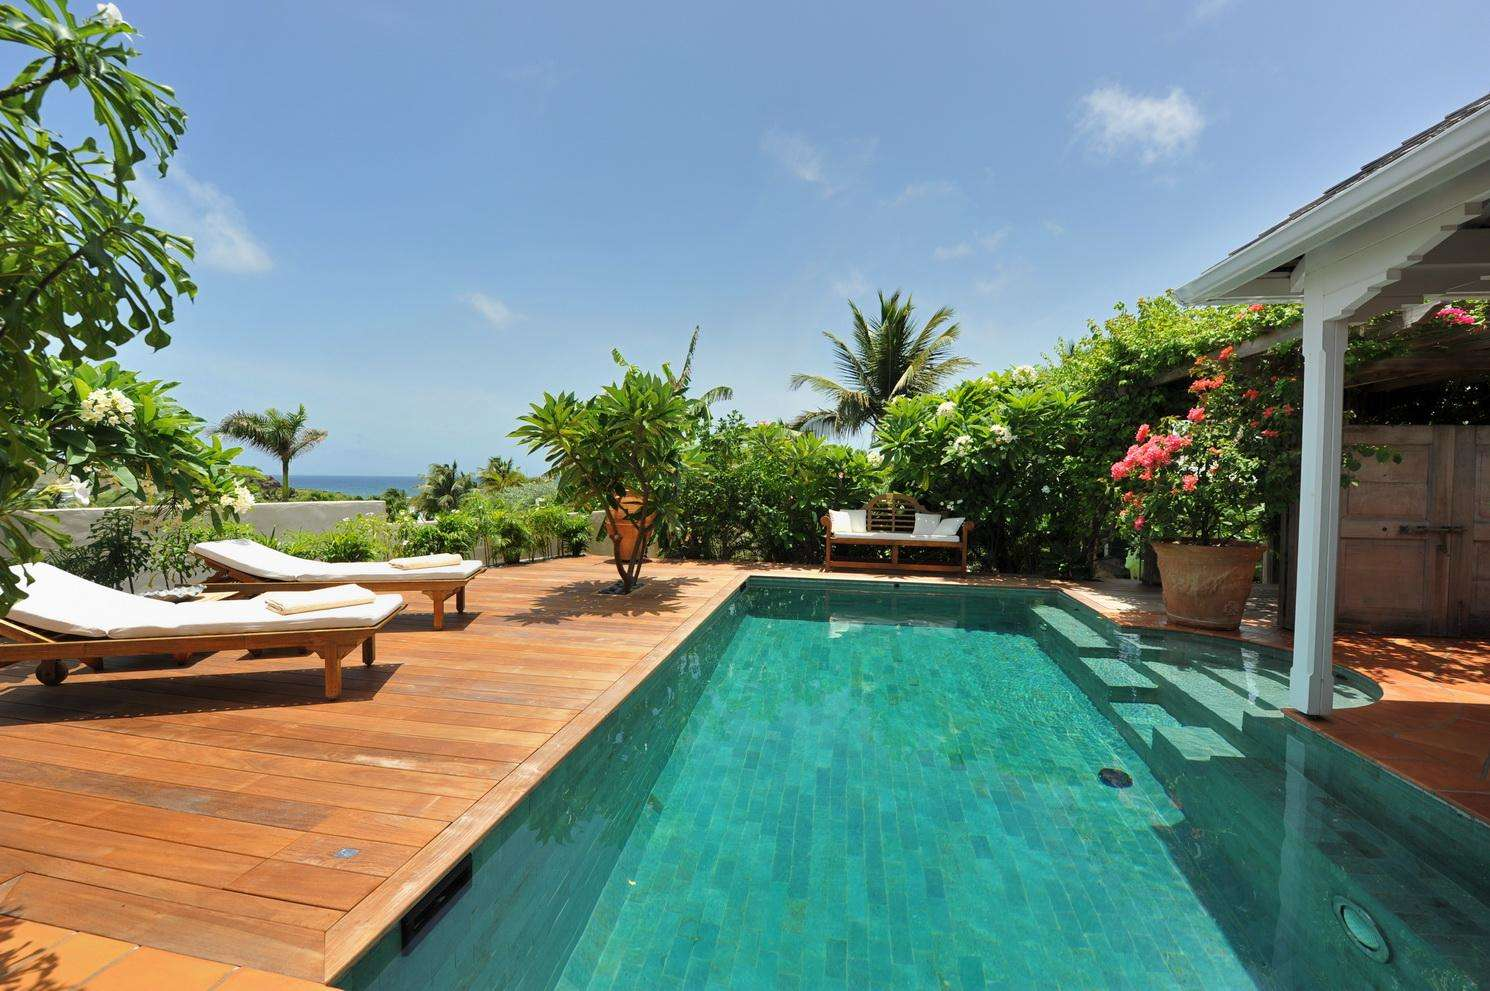 Luxury villa rentals caribbean - St barthelemy - Marigot - No location 4 - la Belle Epoque - Image 1/19